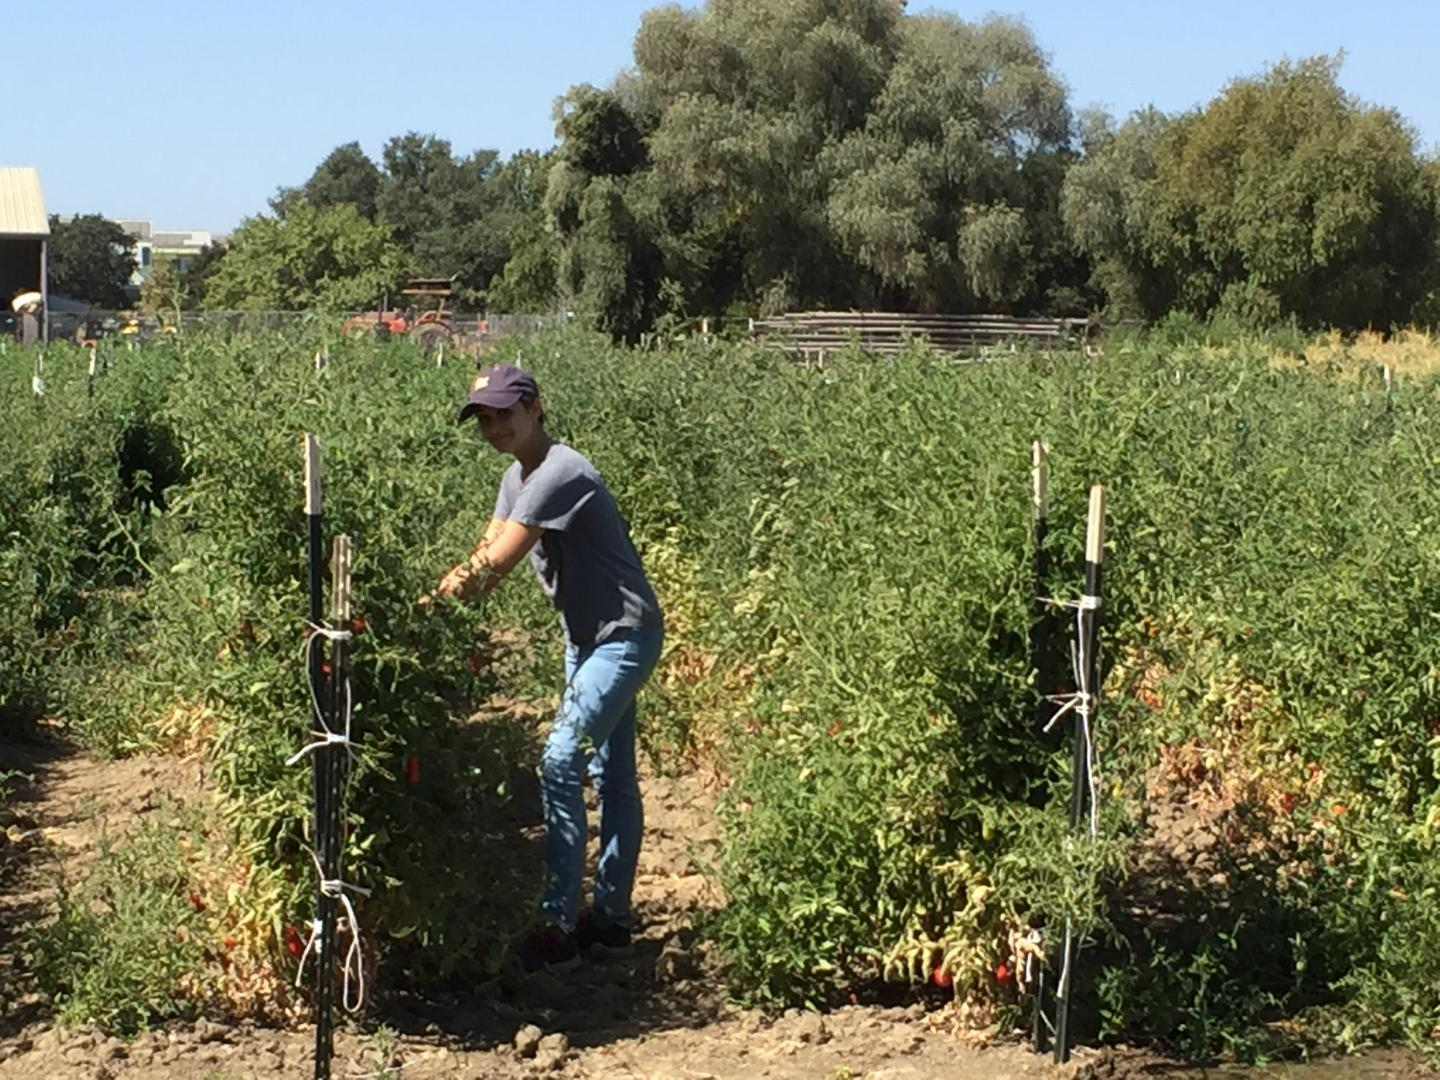 Harvesting Microbes in a Tomato Field